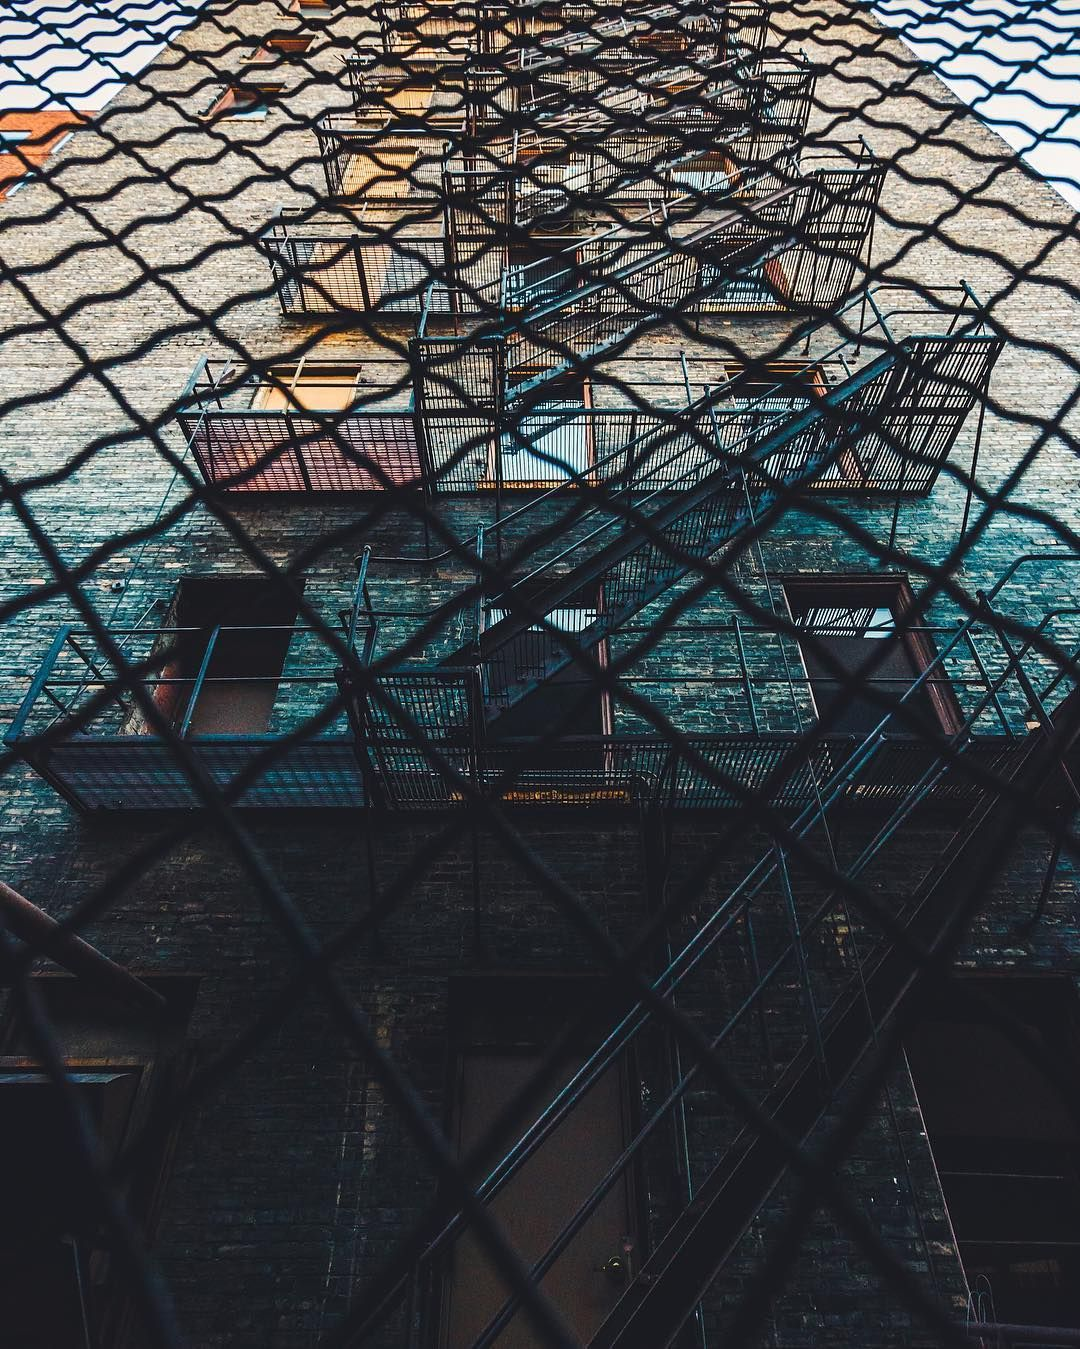 The vision must be followed by the venture. It is not enough to stare up the steps - we must step up the stairs. - Vance Havner by firsthandaccount